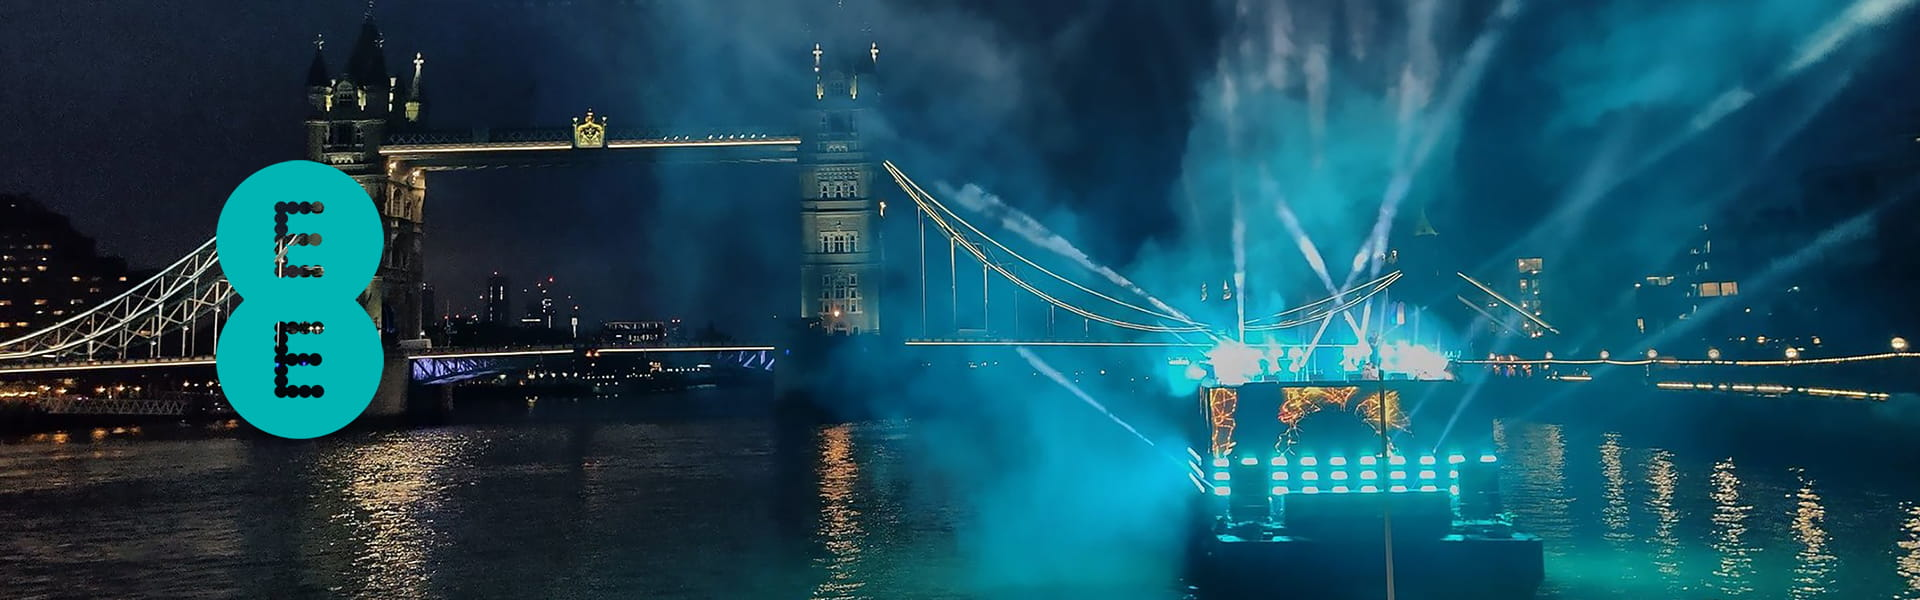 EE 5G Launch on the River Thames in London